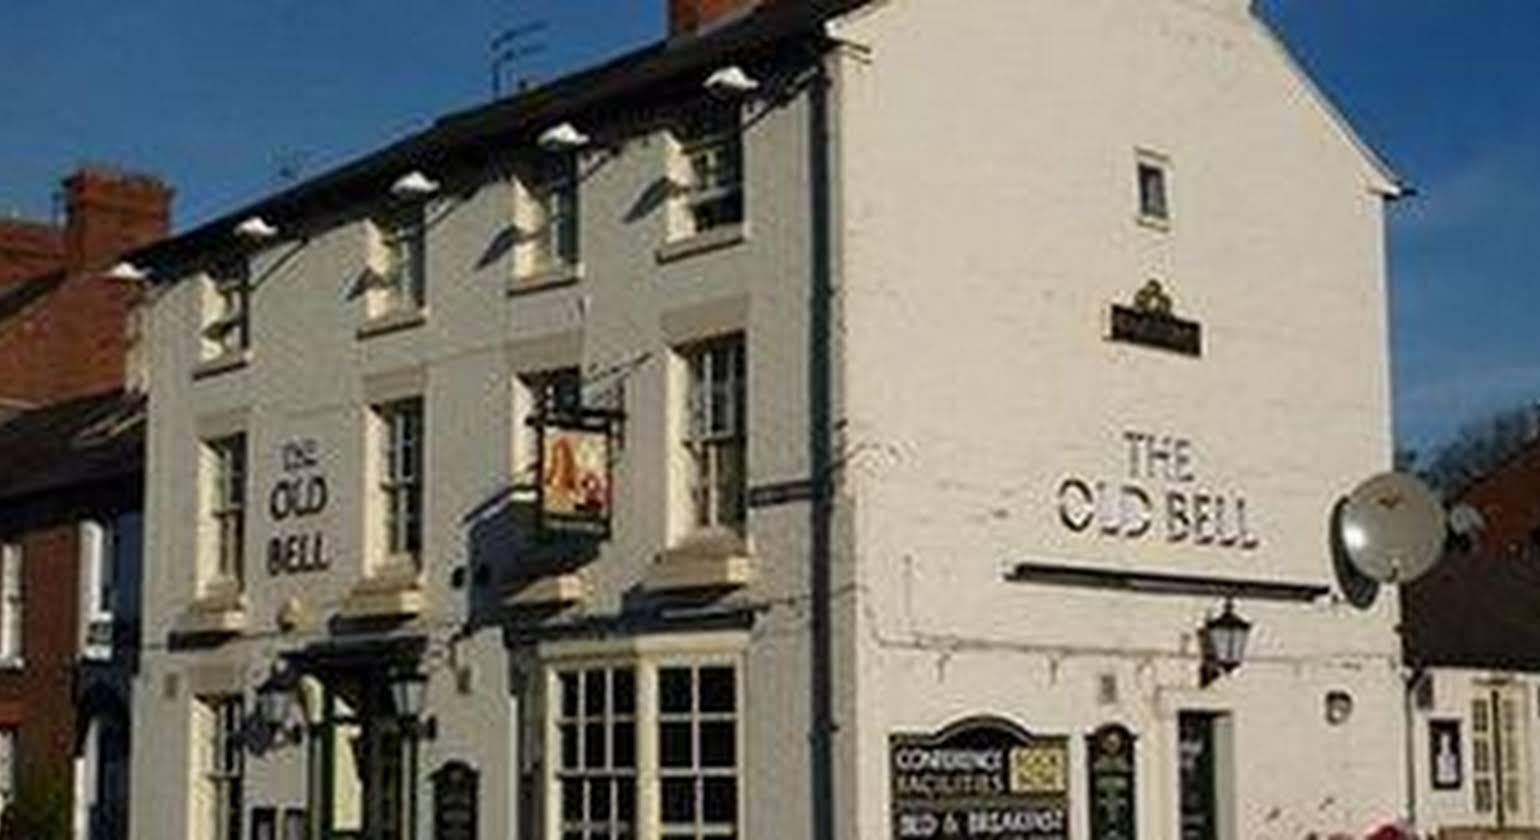 The Old Bell